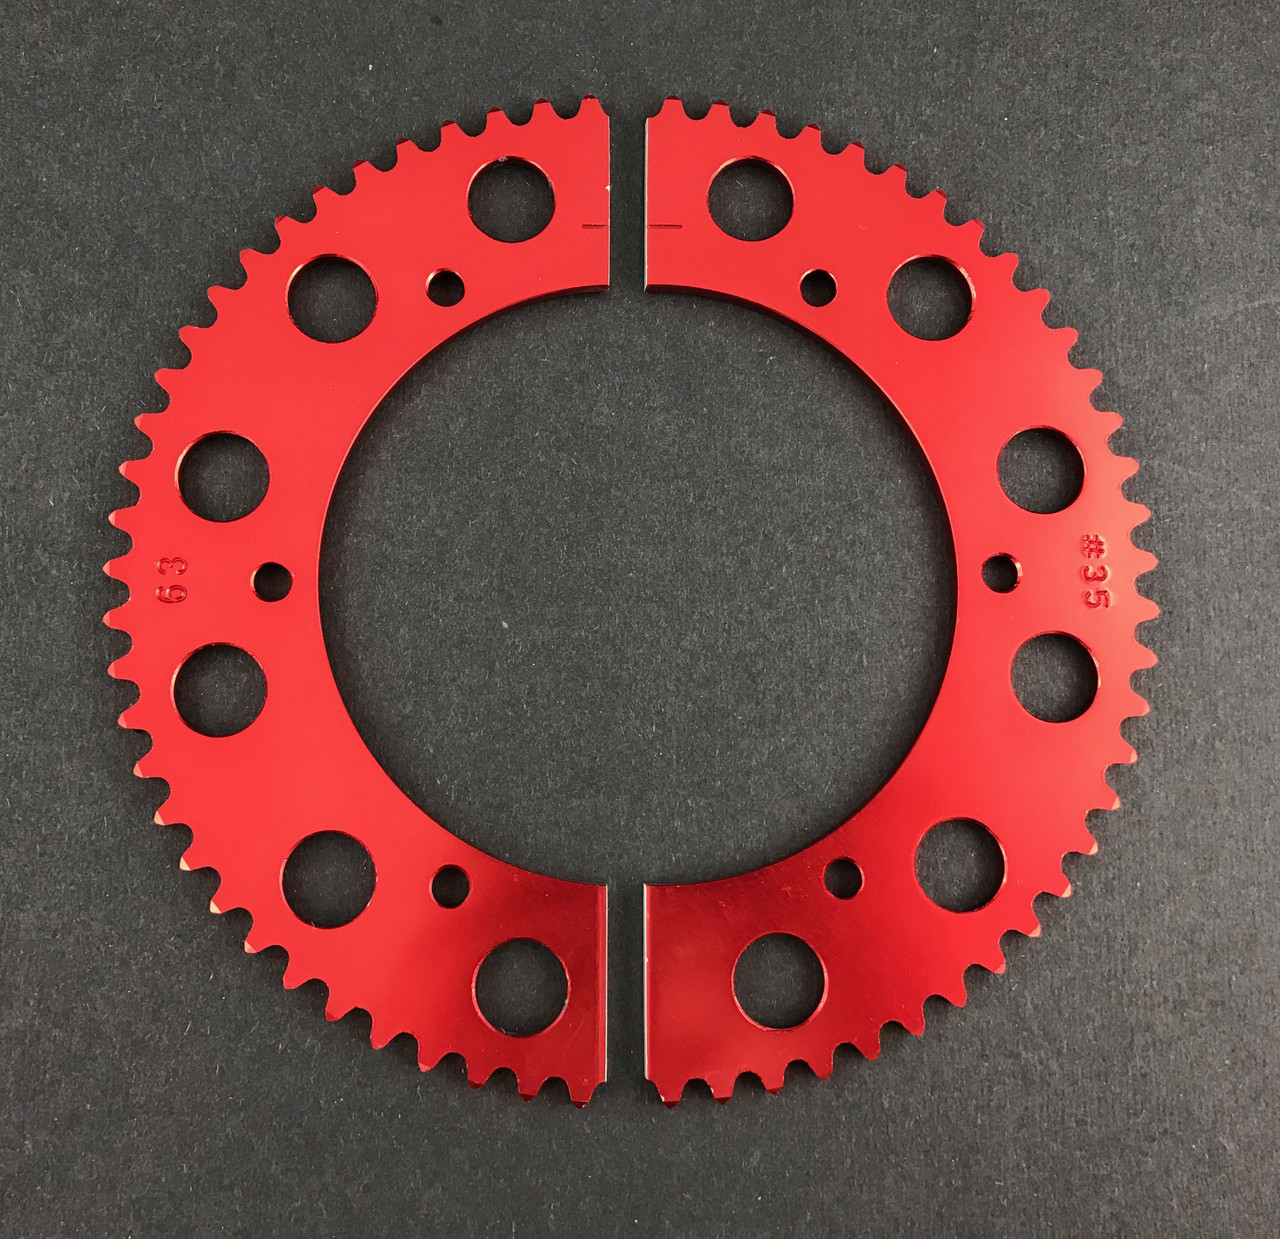 Pit Parts Split Sprocket - 66 Tooth - 35 Chain